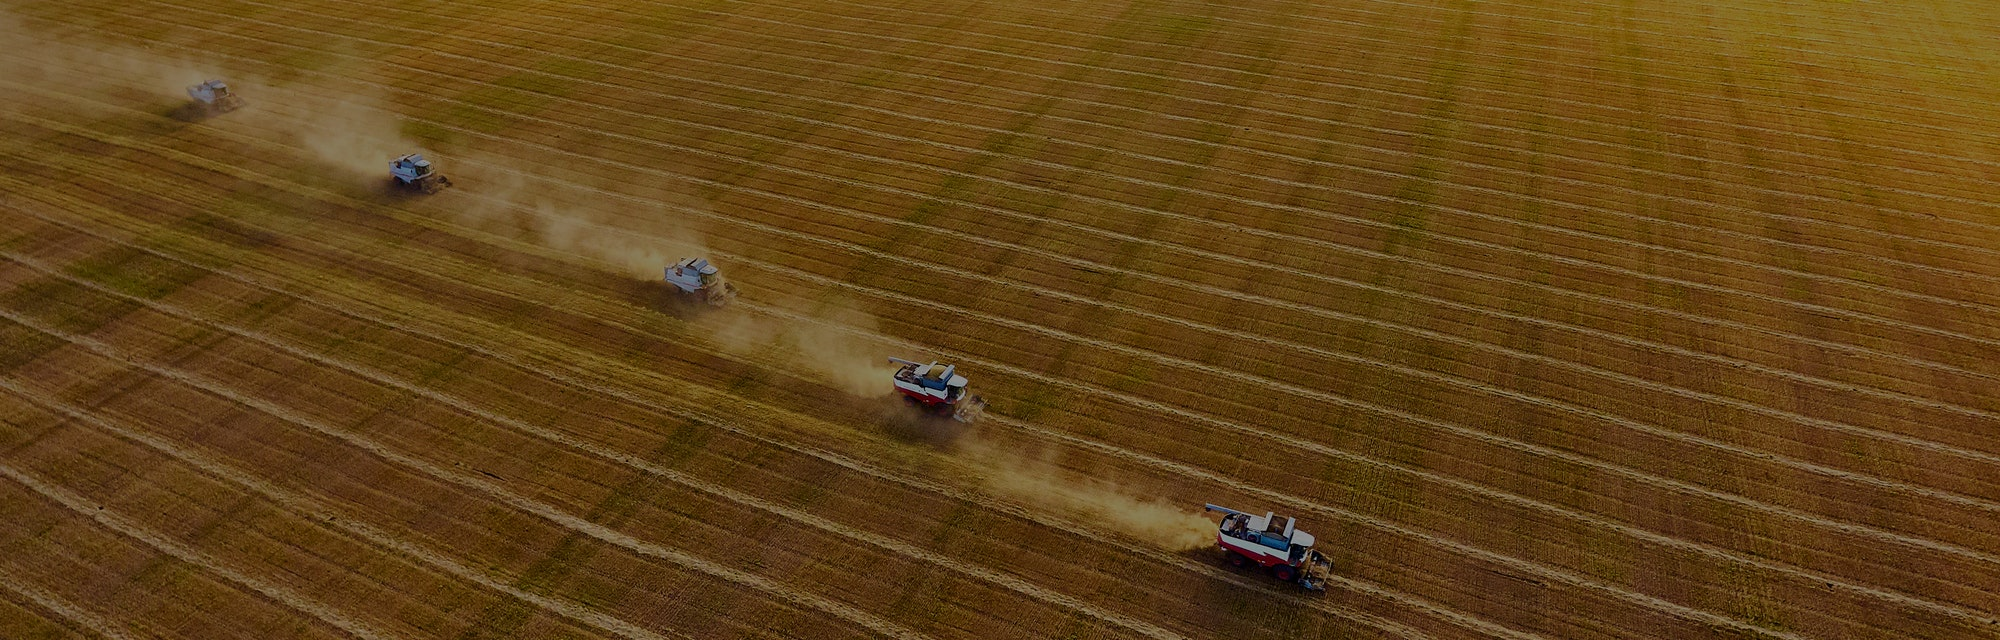 Harvesting of wheat. Combine harvesters agricultural machines collecting golden  wheat on the field. View from above. Agriculture.